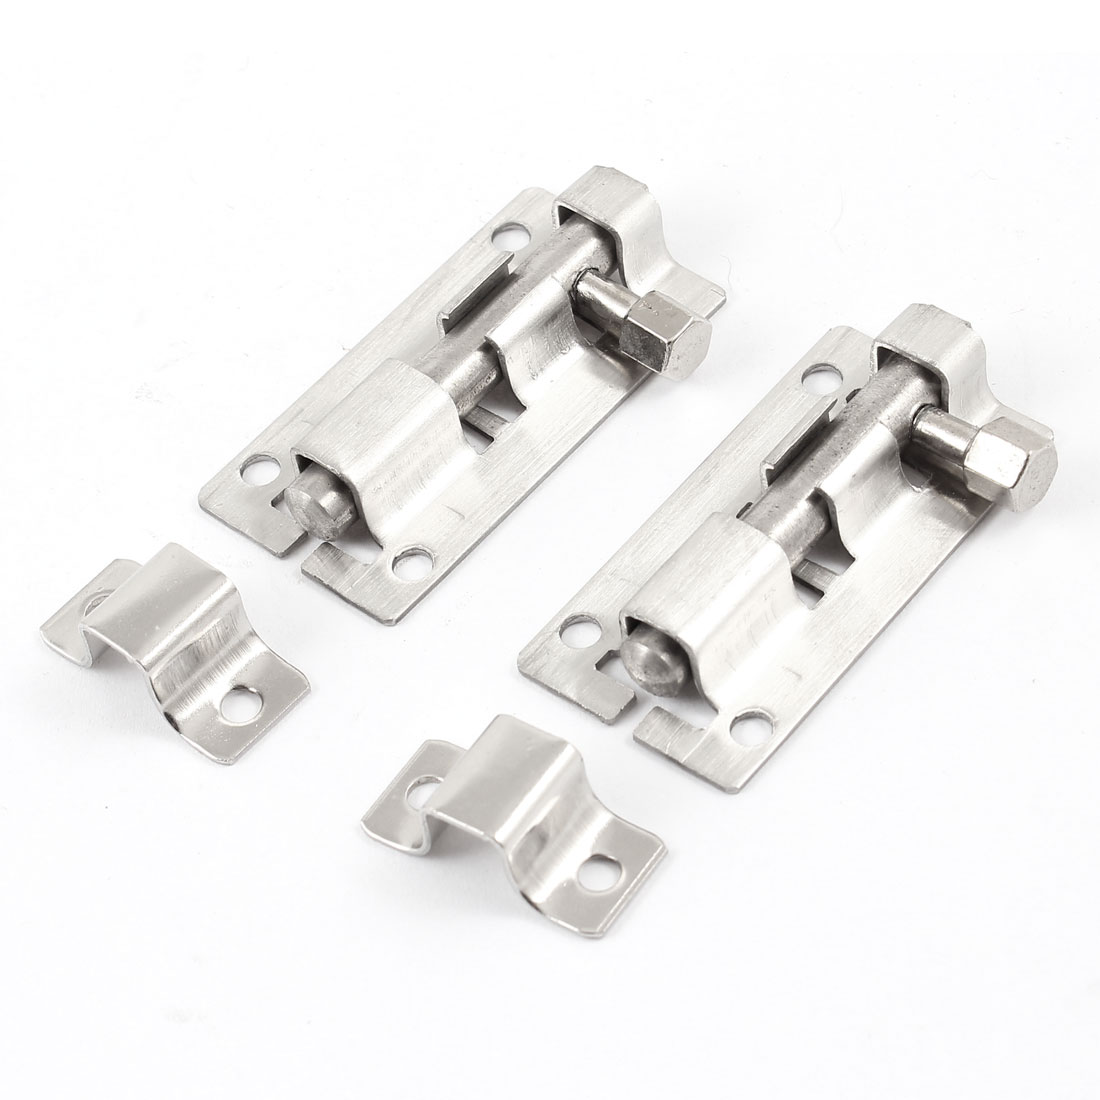 "Unique Bargains 2.4"" Stainless Steel Gate Security Latch  Bolt Set Silver Tone 2 Pcs"